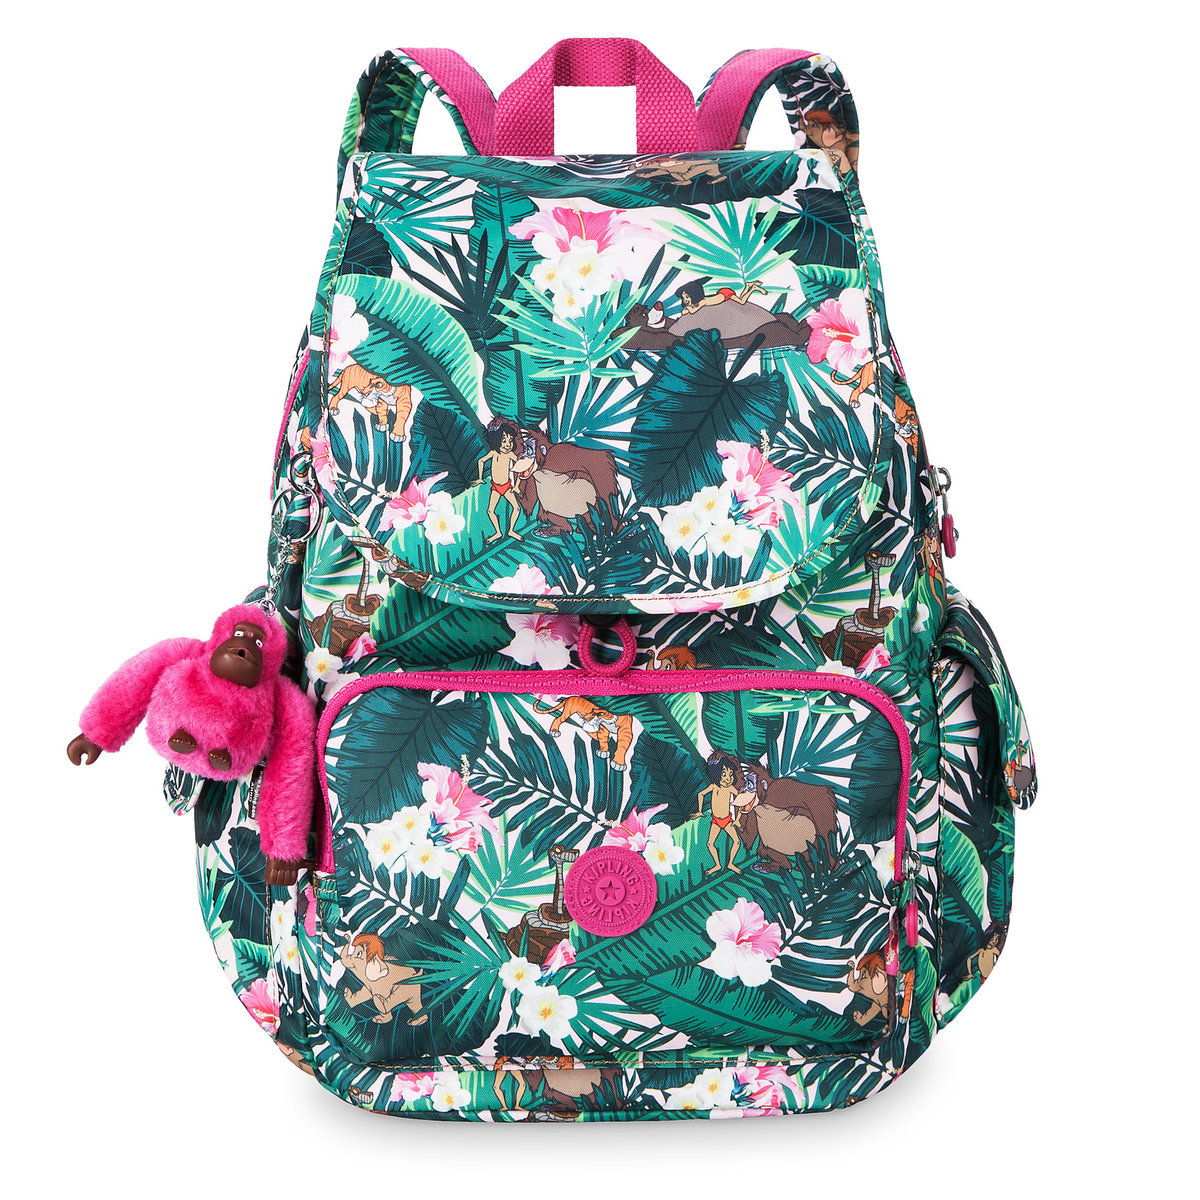 15f3df59070 Product Image of Jungle Book City Pack Backpack by Kipling   1